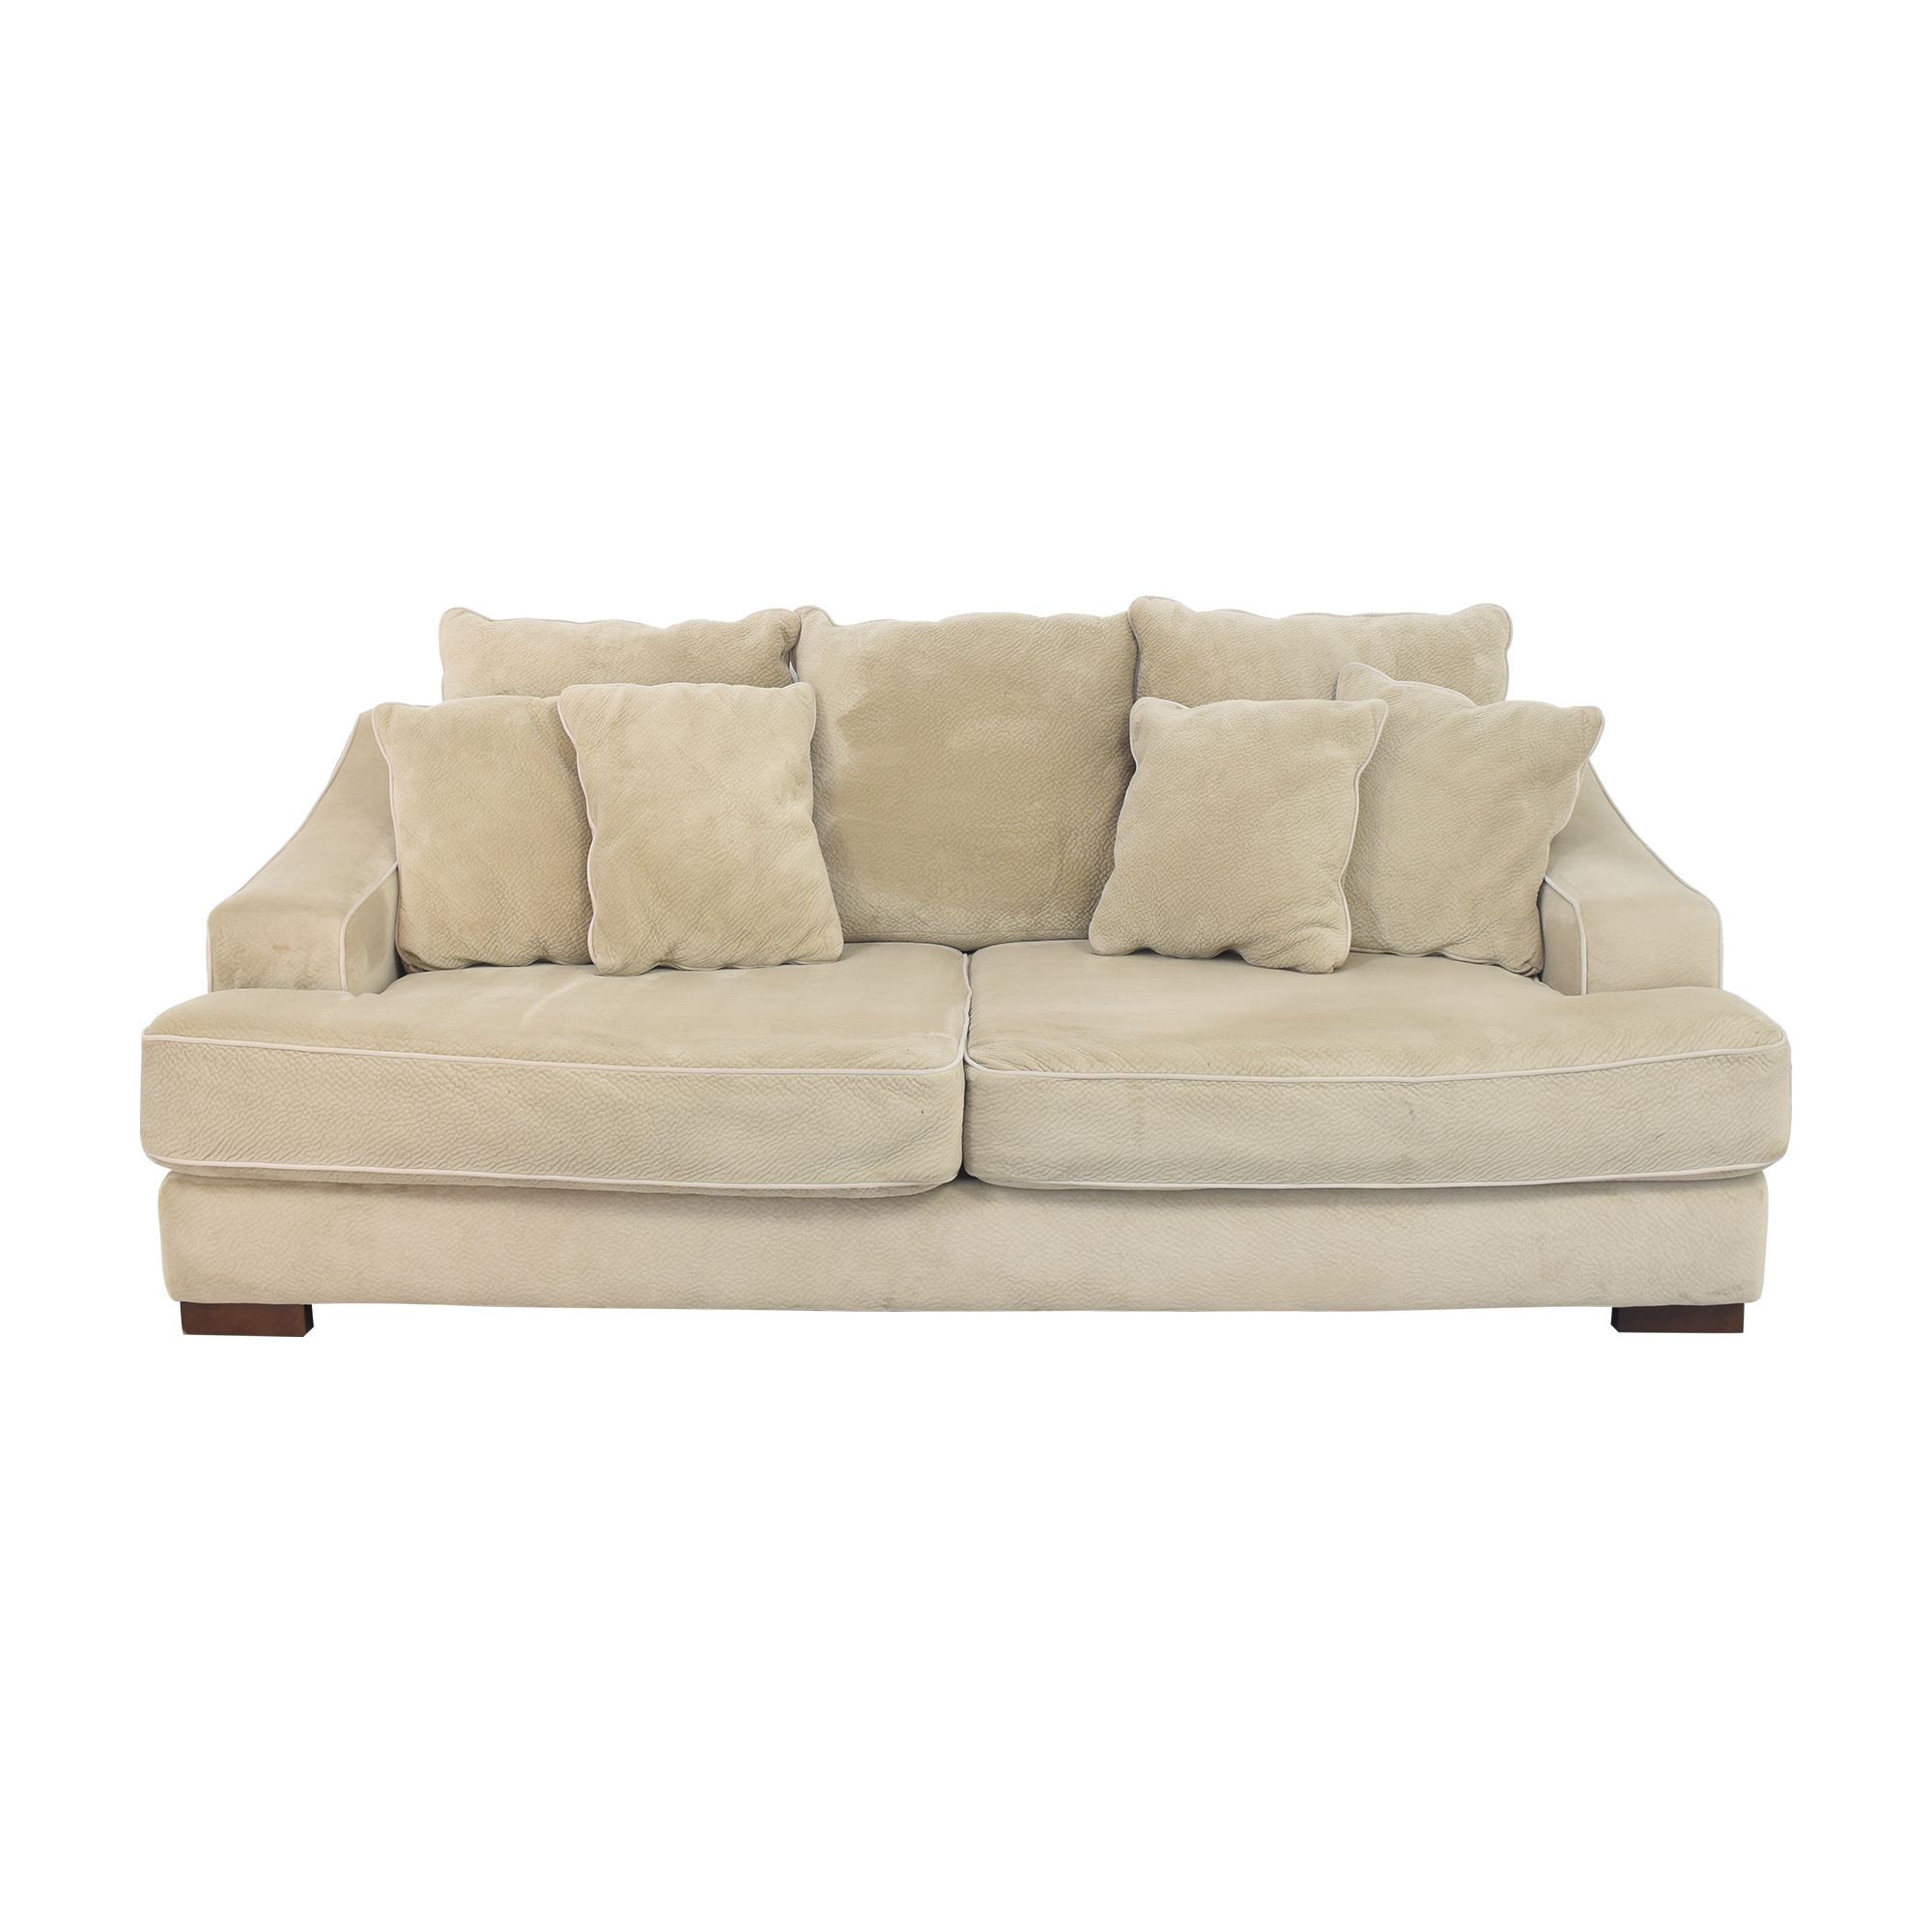 Fairmont Designs Fairmont Designs Cooper Two Cushion Sofa Sofas